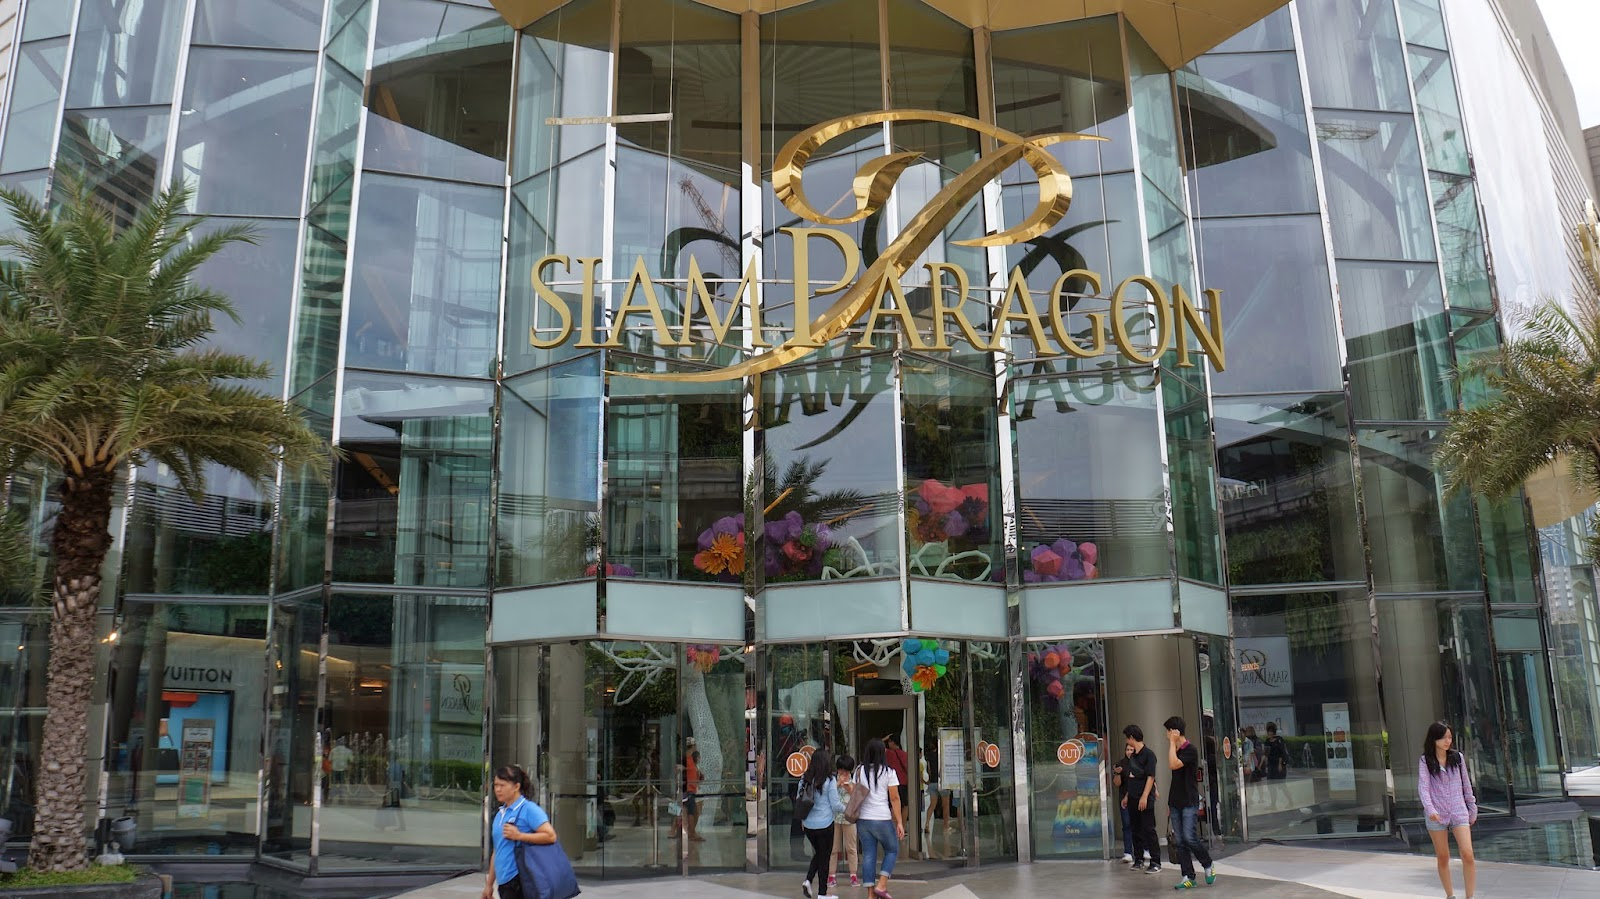 The entrance to Siam Paragon, one of Bangkok's most popular shopping malls